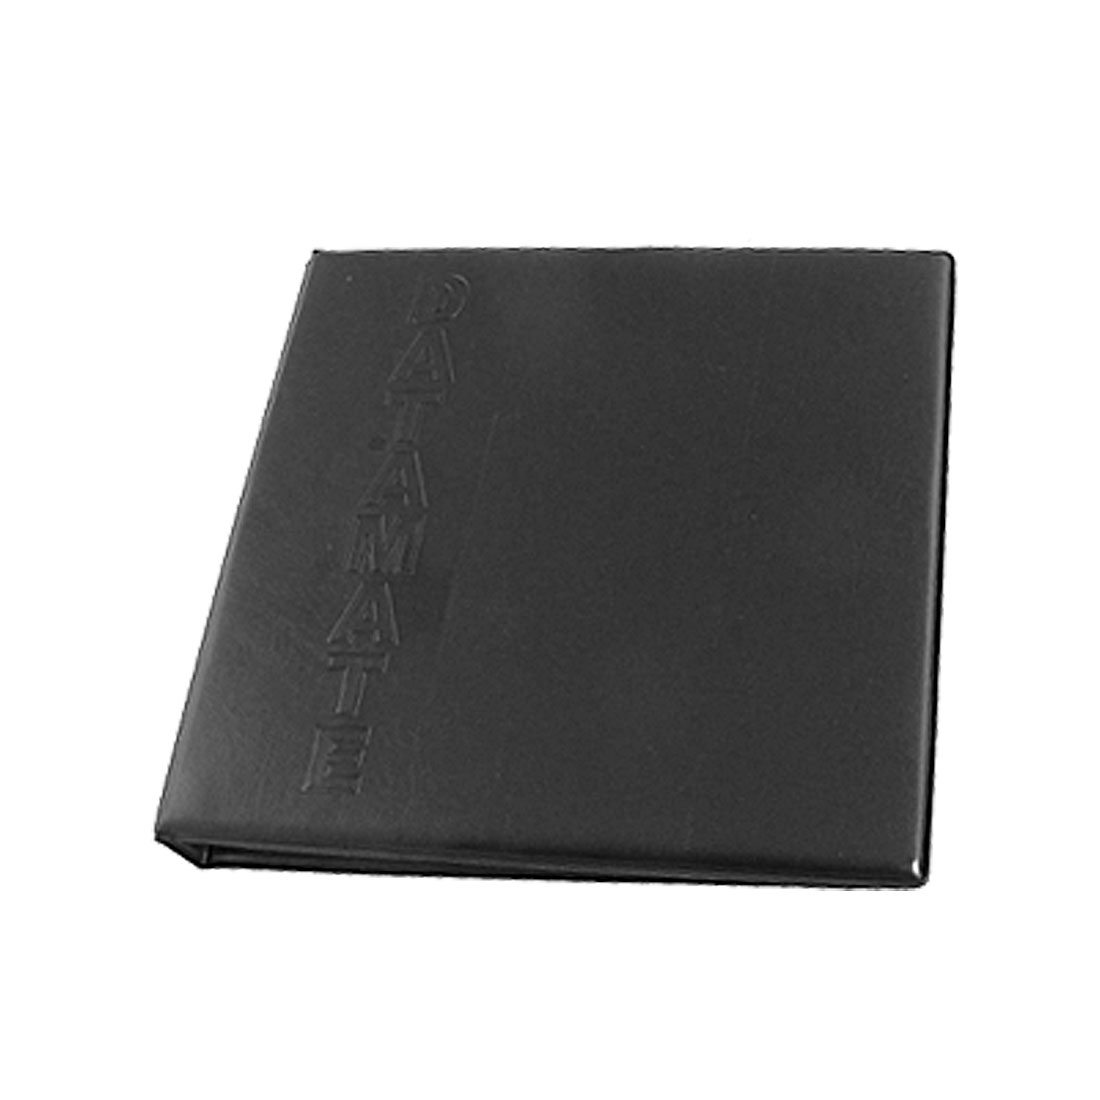 Black Leather 360 Business Name Card Book Holder